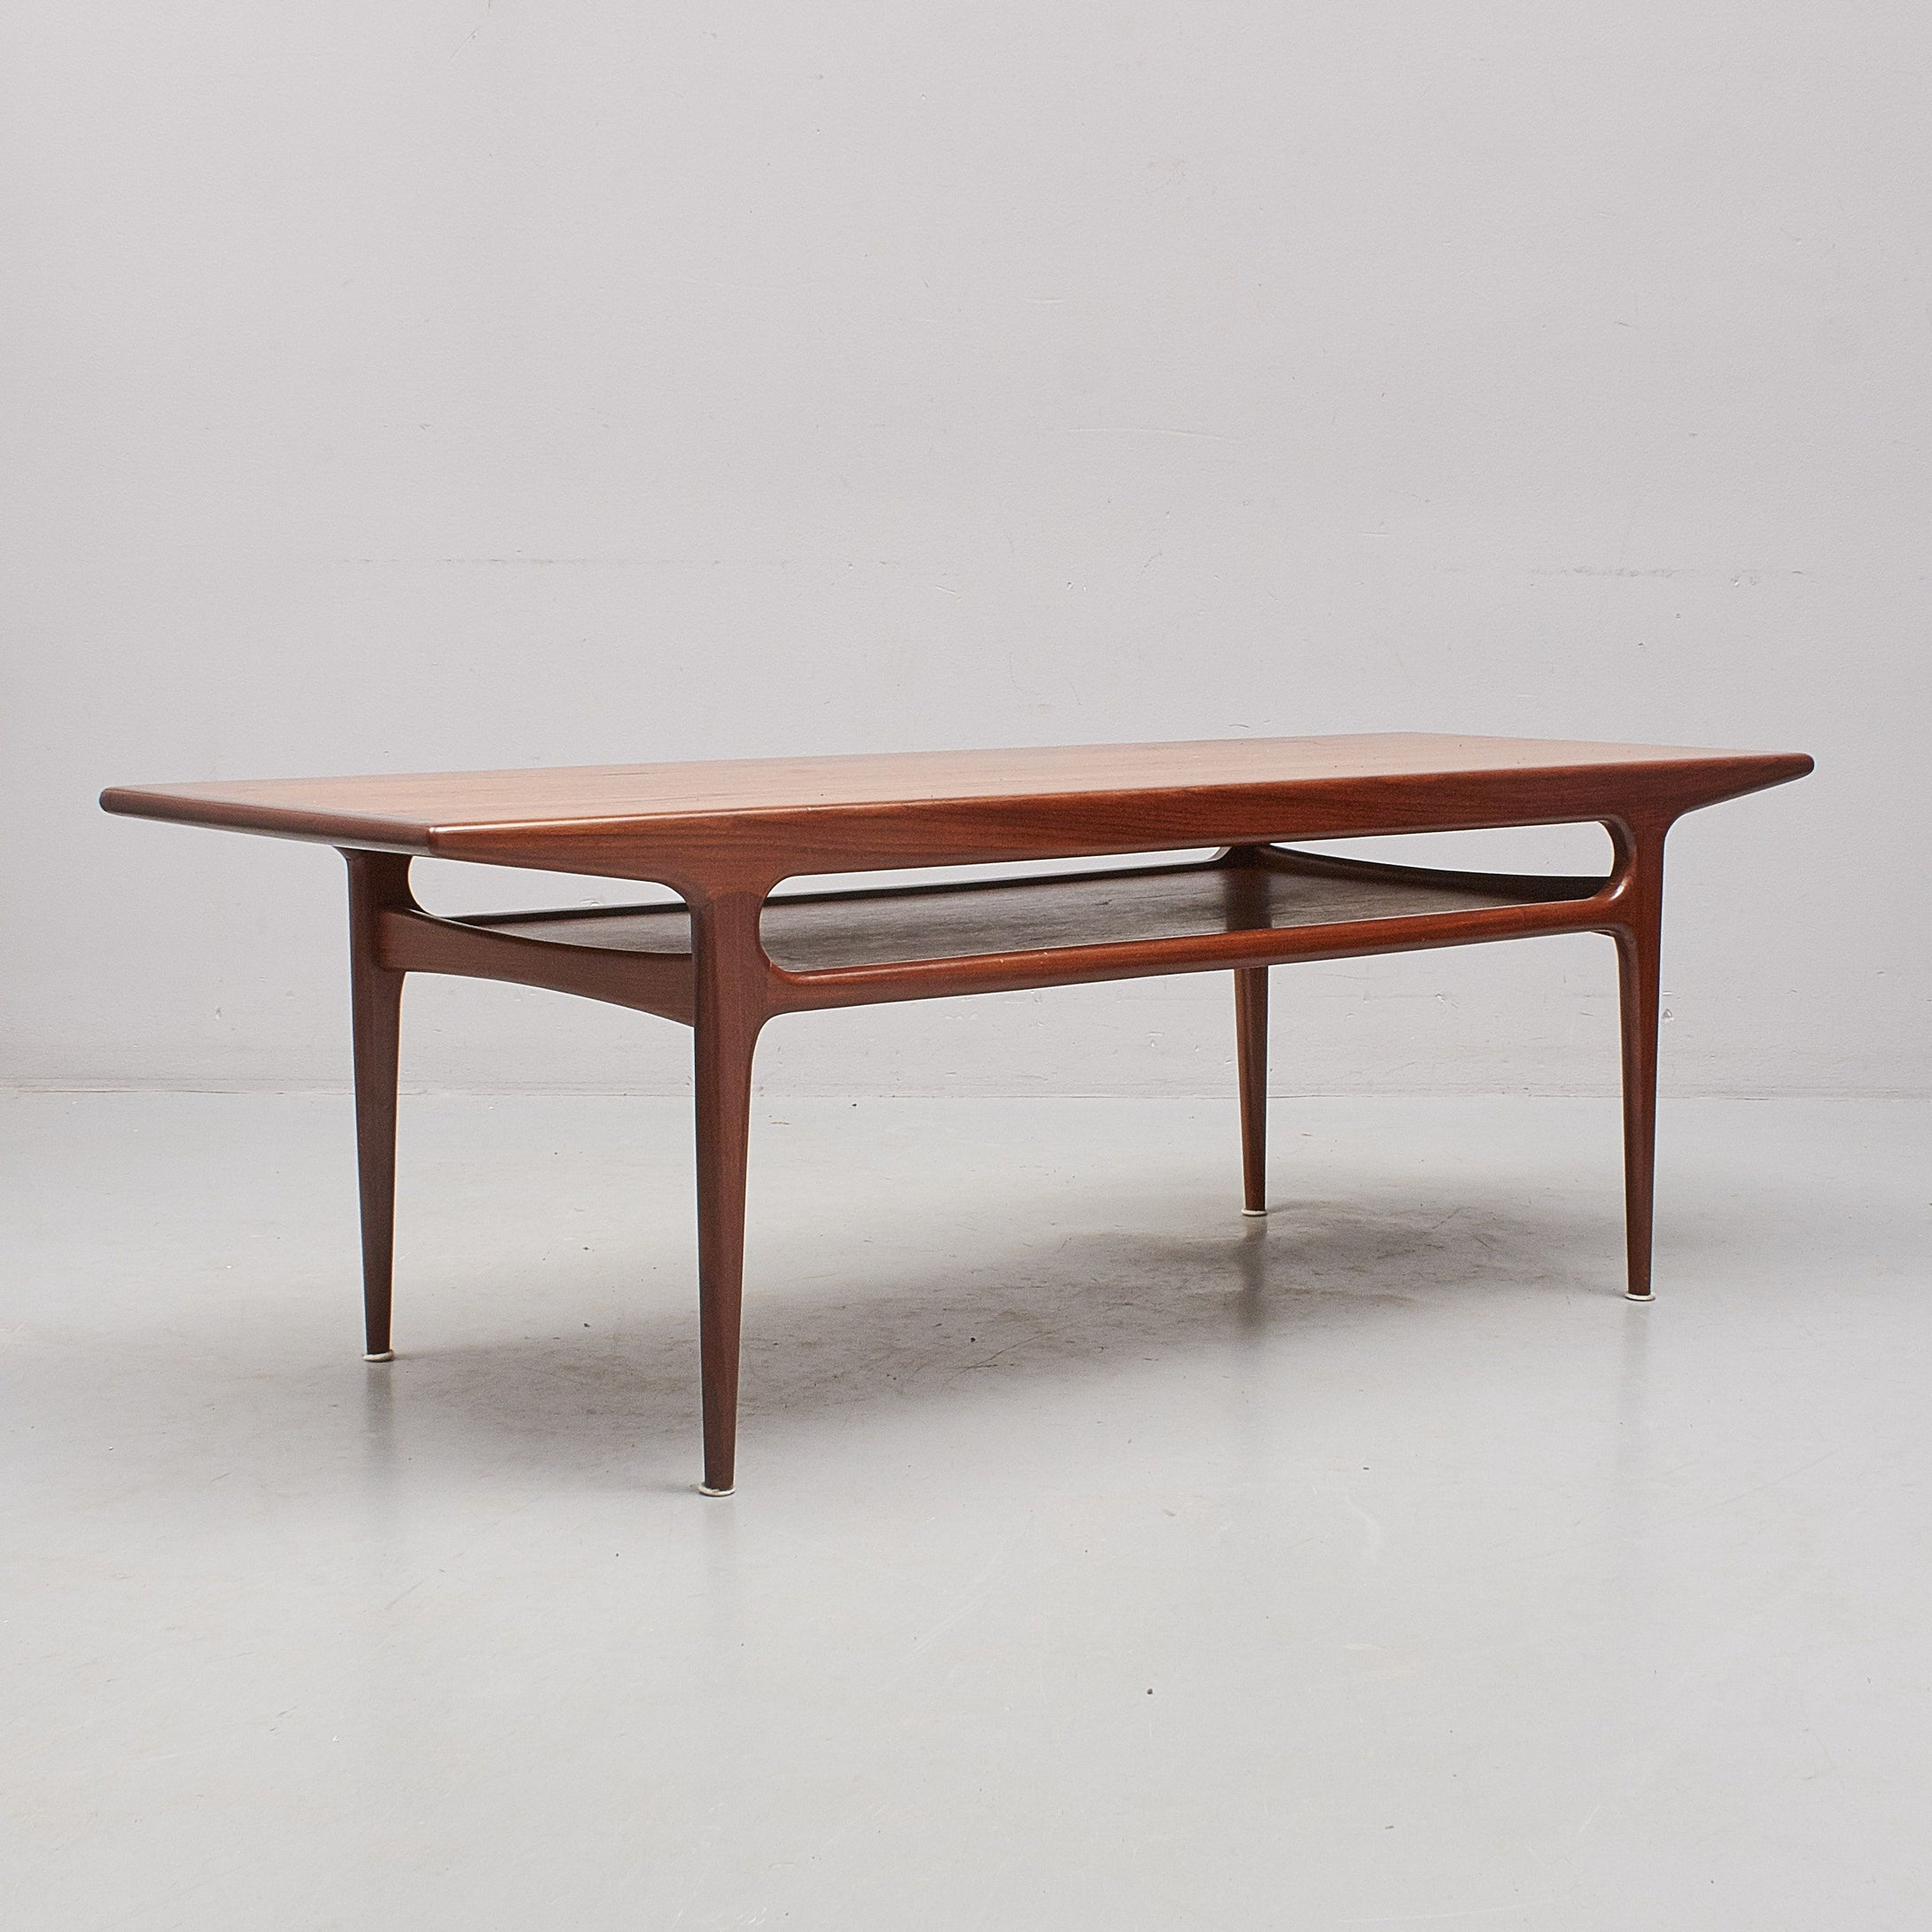 Soffbord i teak, 1960-tal. H: 50cm samt 150cm X 55cm. 1960's teak coffee table. H: 50cm/19,7″ and 150cm/59,1″ X 55cm/21,7″.